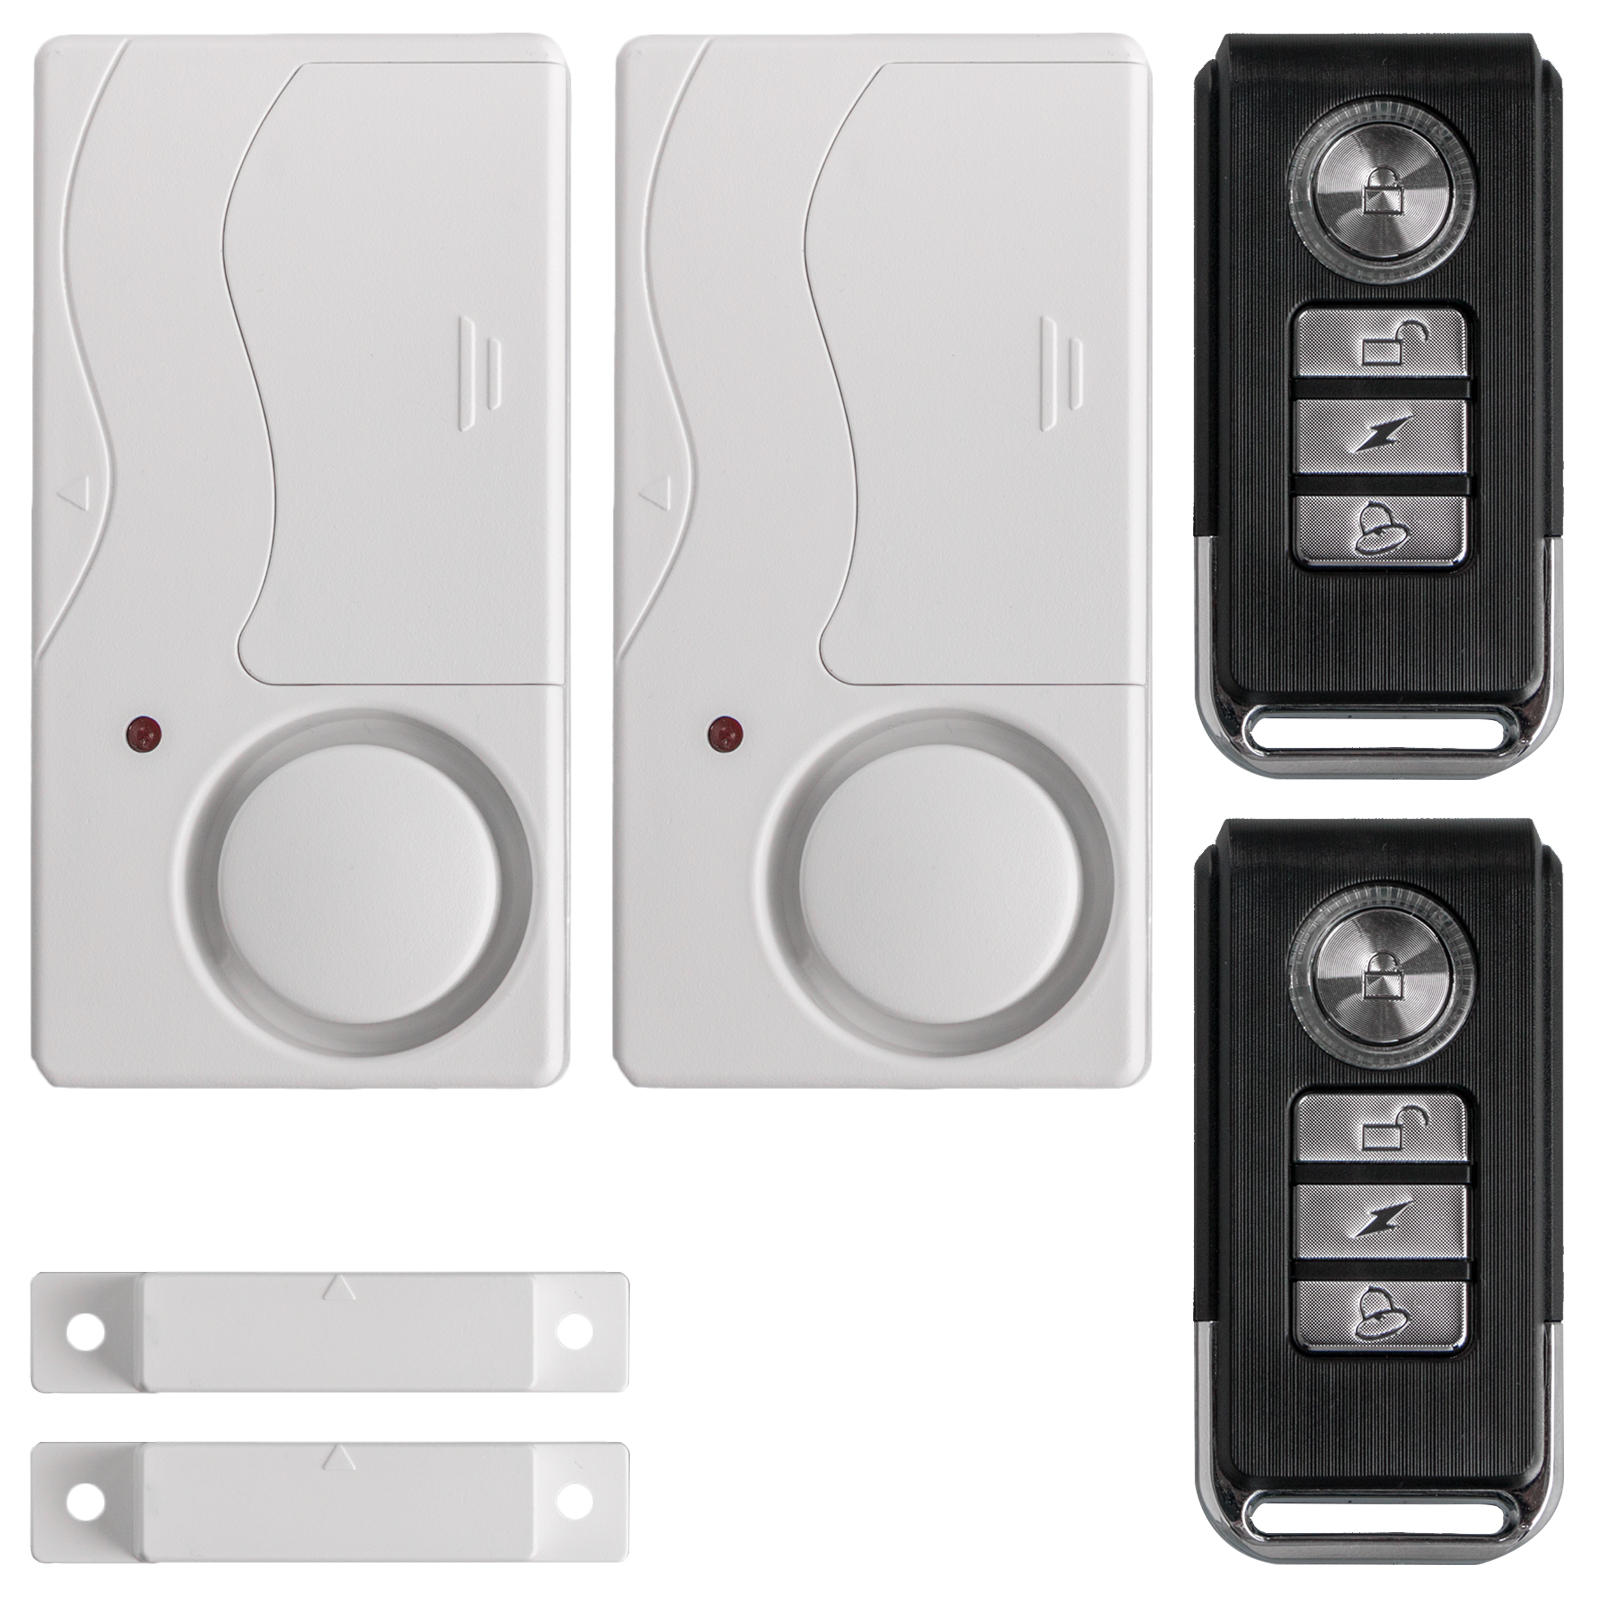 2-pack Wireless Anti-Theft Remote Control Magnetic Sensor Door Window Home Entry Security Burglar Bell Alarm